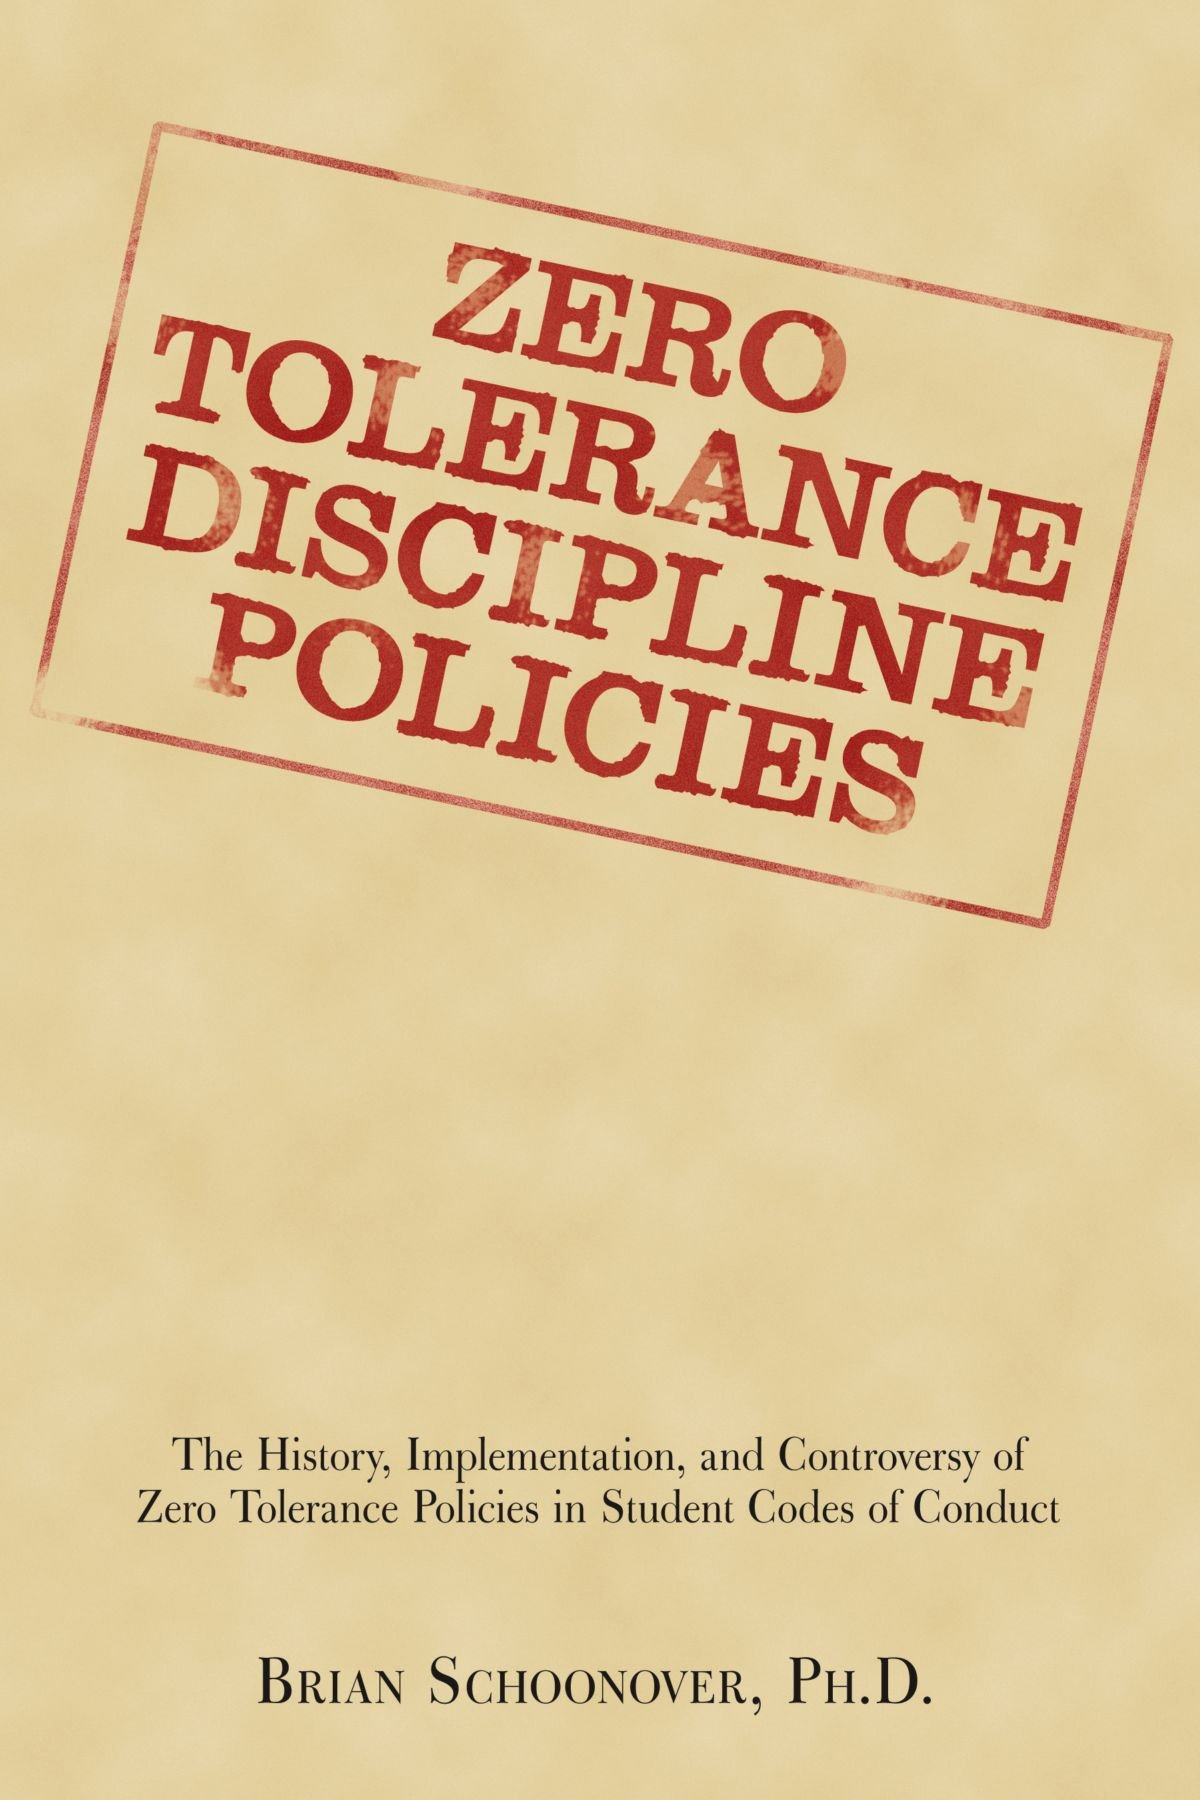 Download Zero Tolerance Discipline Policies: The History, Implementation, And Controversy Of Zero Tolerance Policies In Student Codes Of Conduct ebook